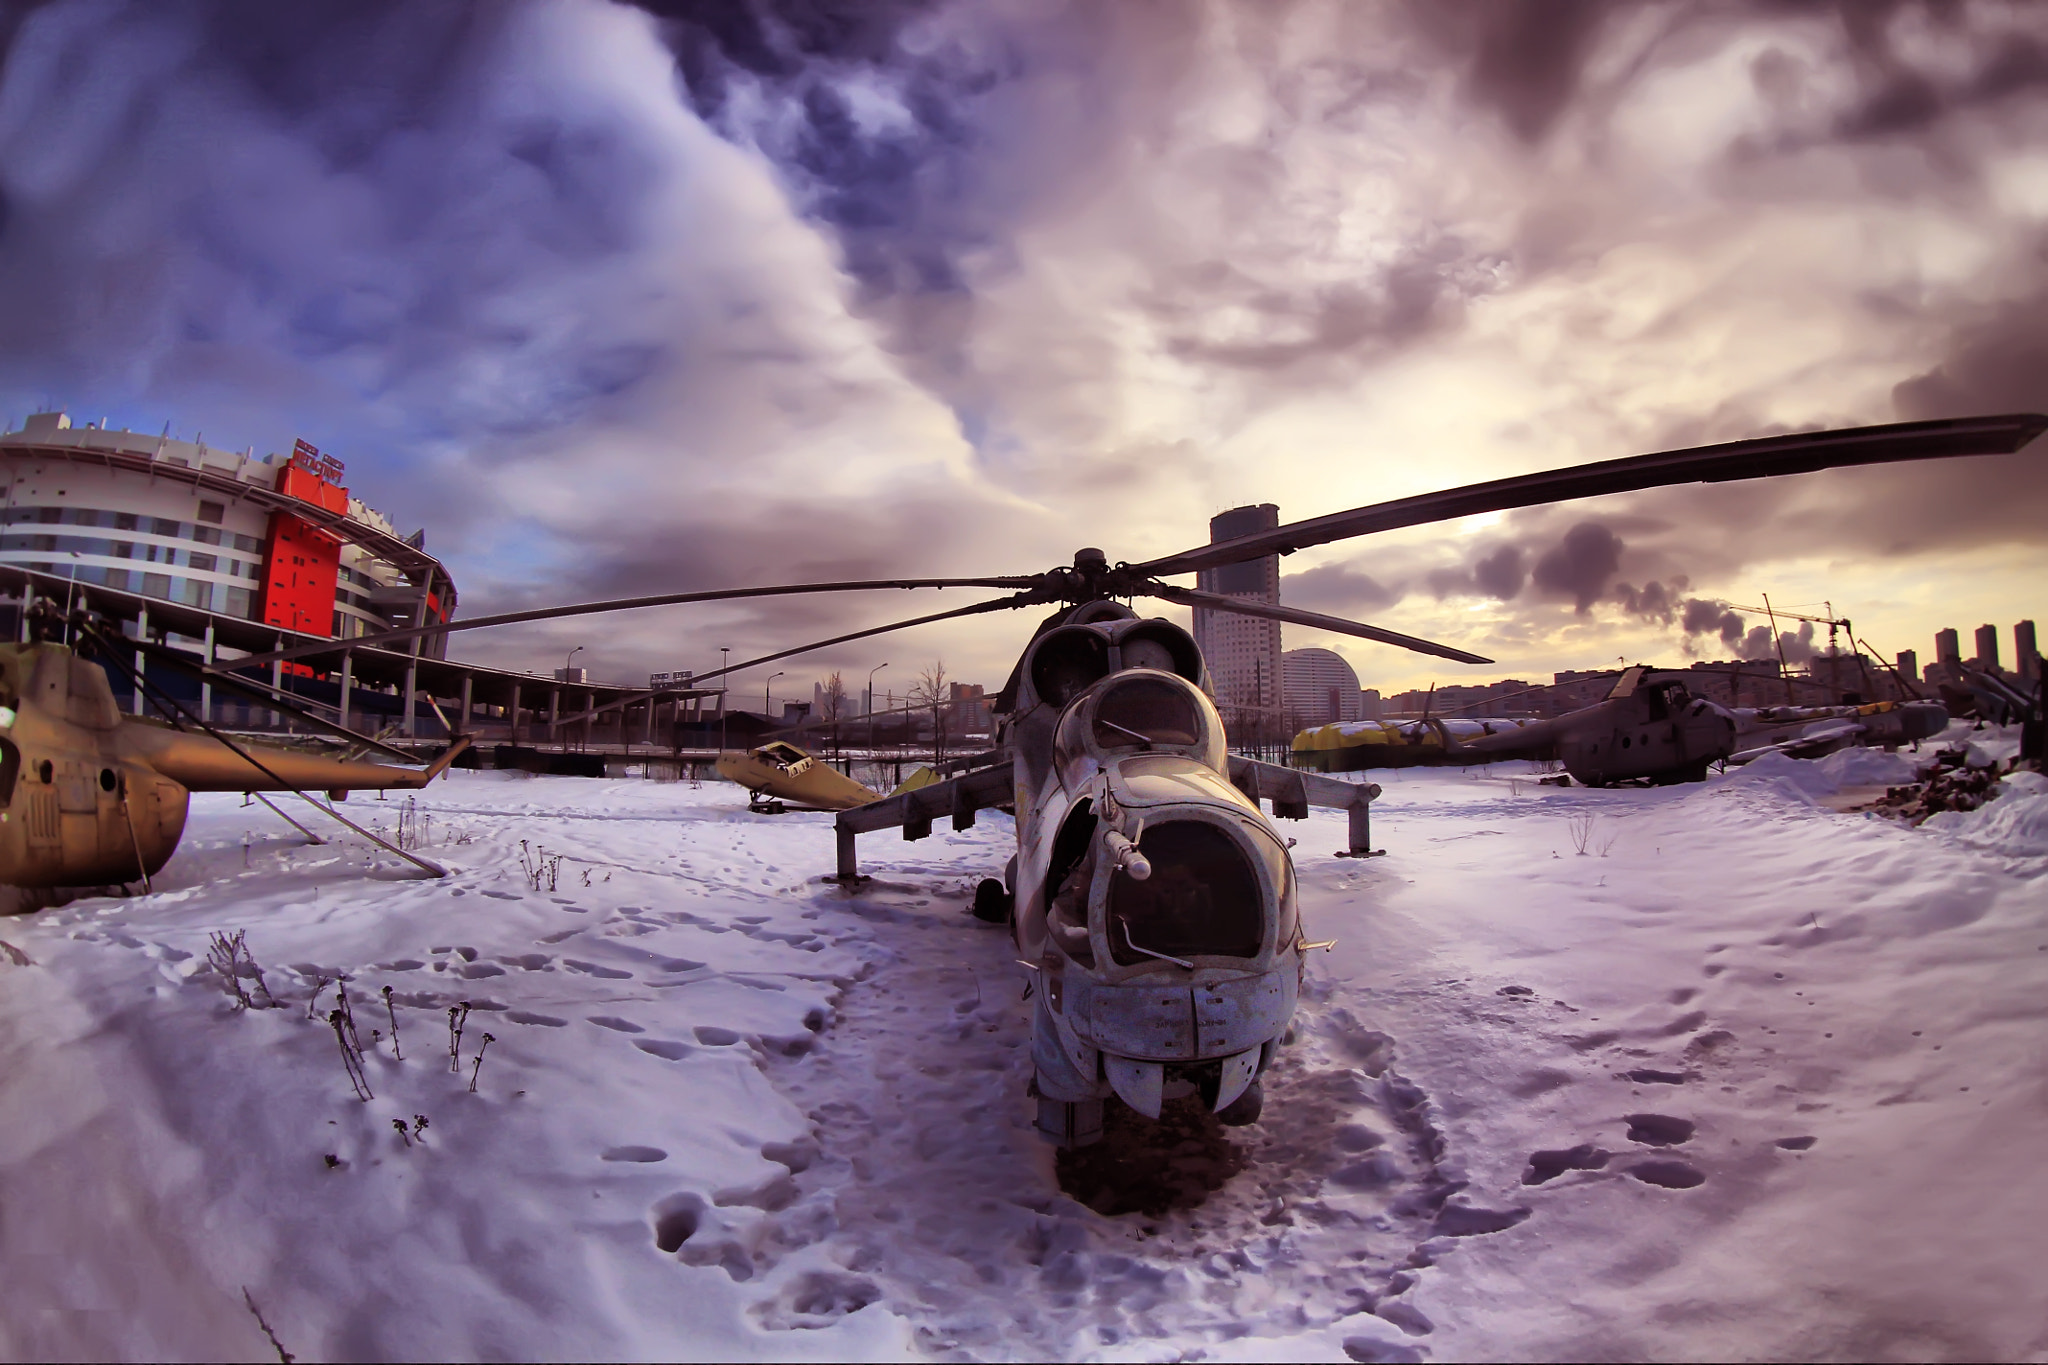 Photograph Helicopter by Arseniy Medvedev on 500px